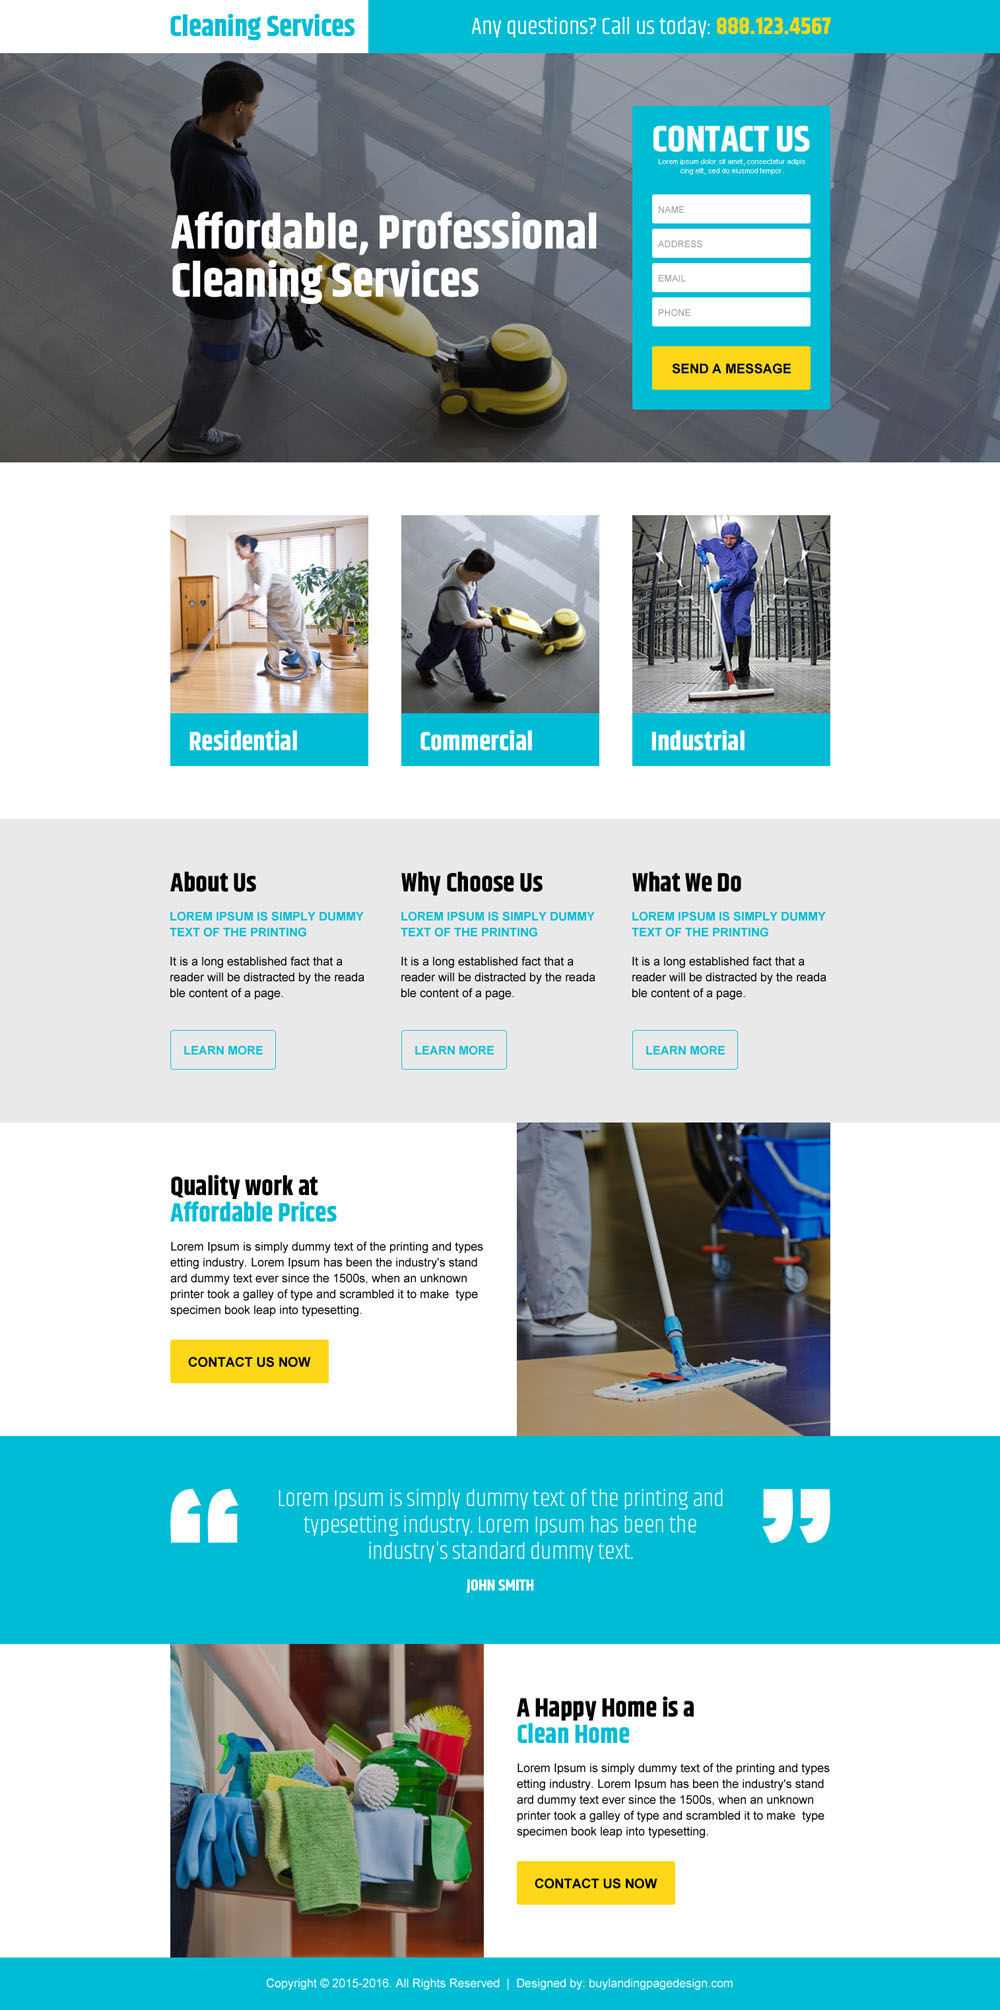 Cleaning Service Landing Page Design For All Type Of Cleaning - High converting landing page templates